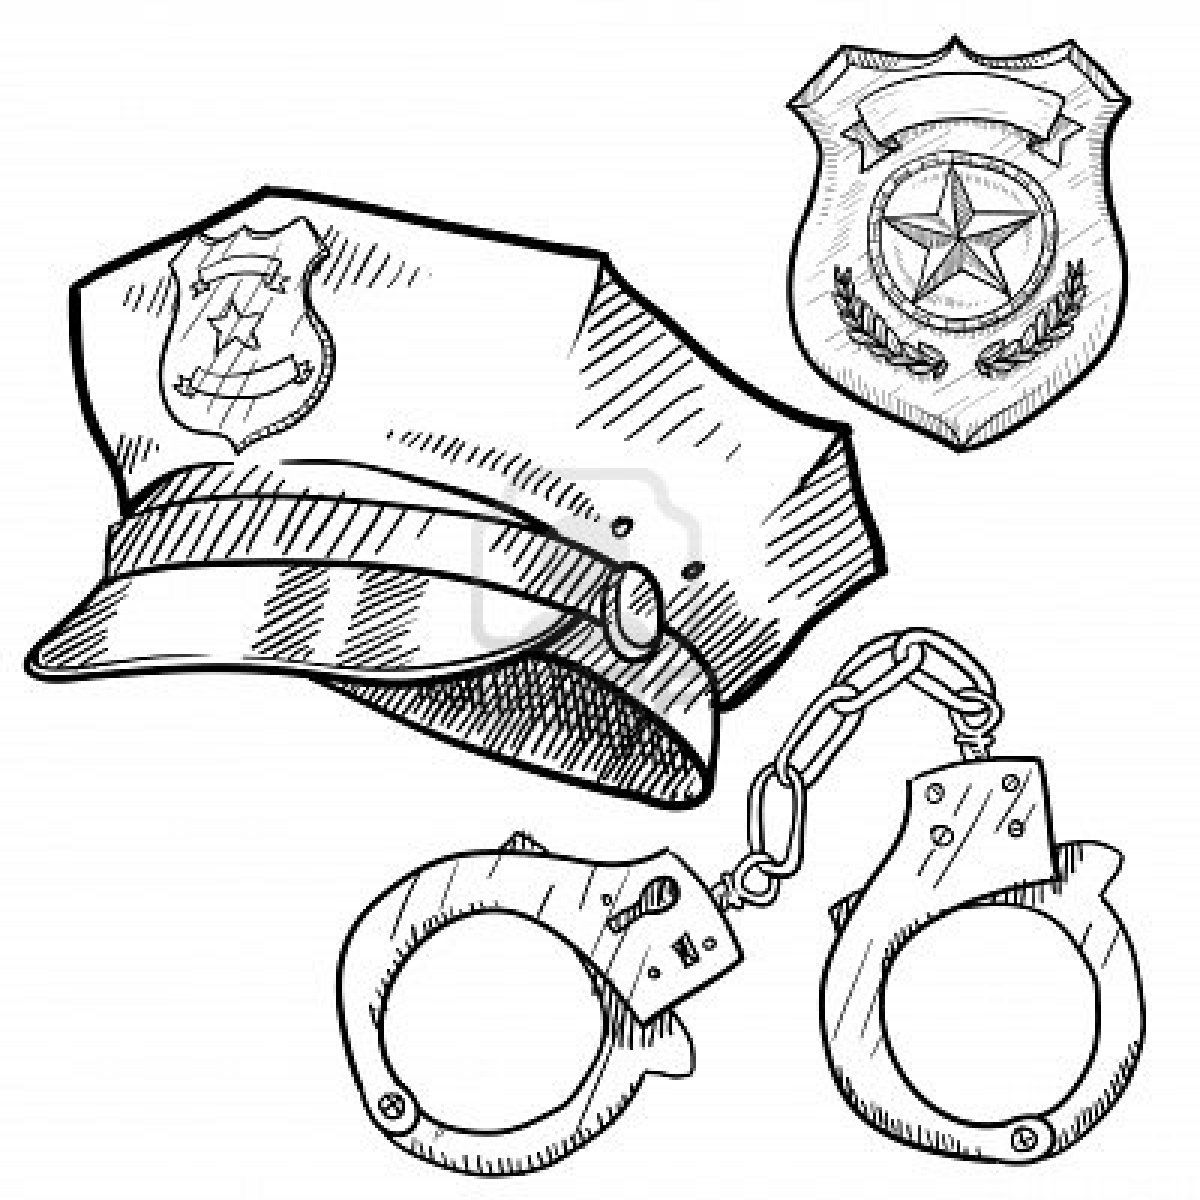 Handcuffs clipart police cap. Stock photo in corrections